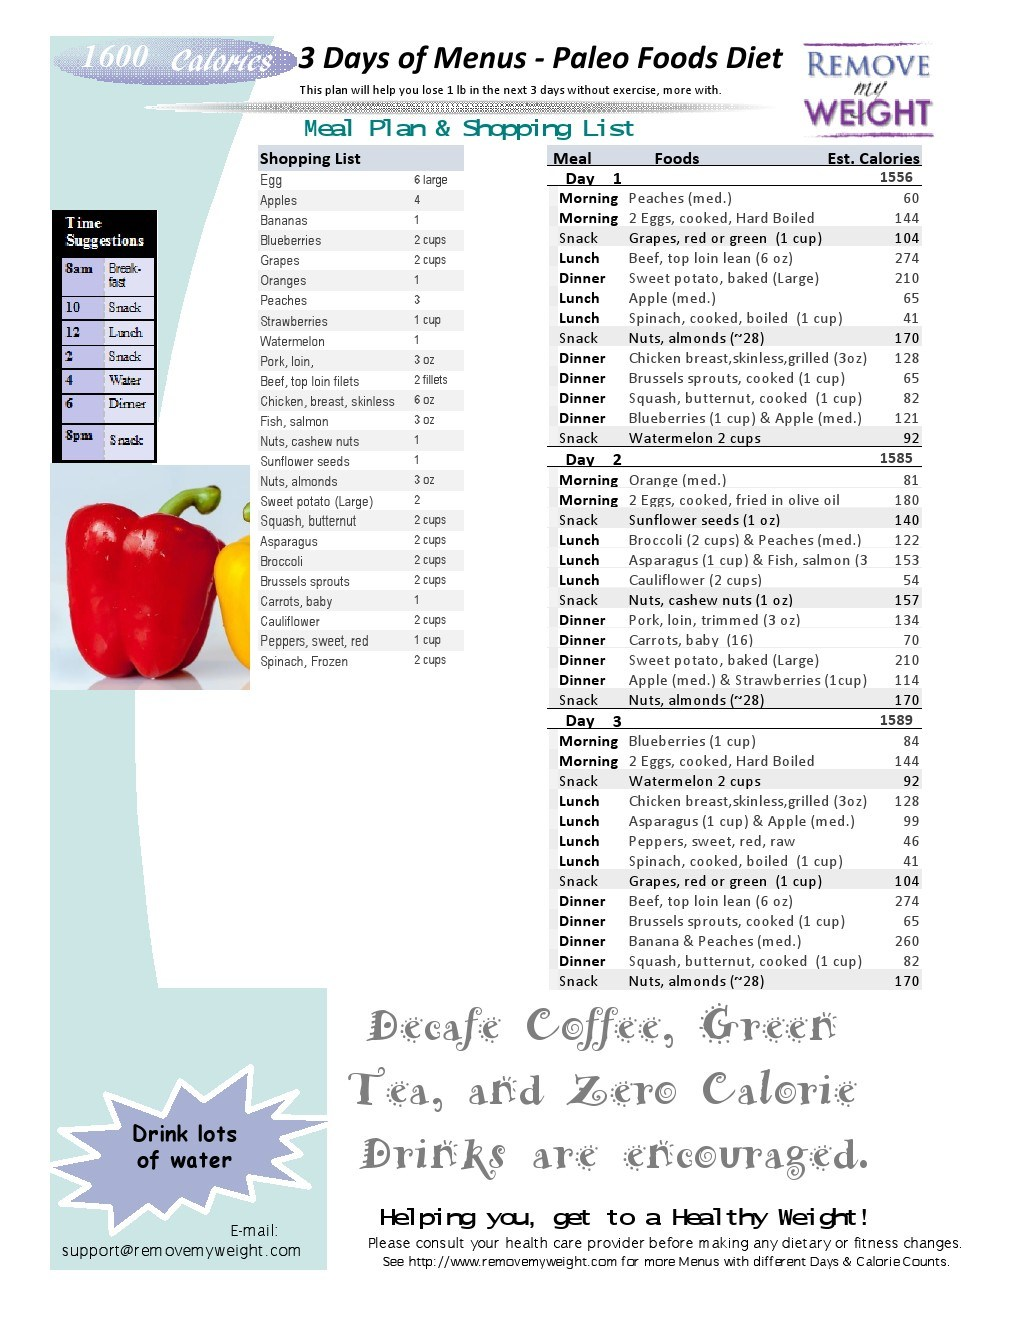 1600 Calories a day 3 Day Paleo Diet with Shoppong List ...